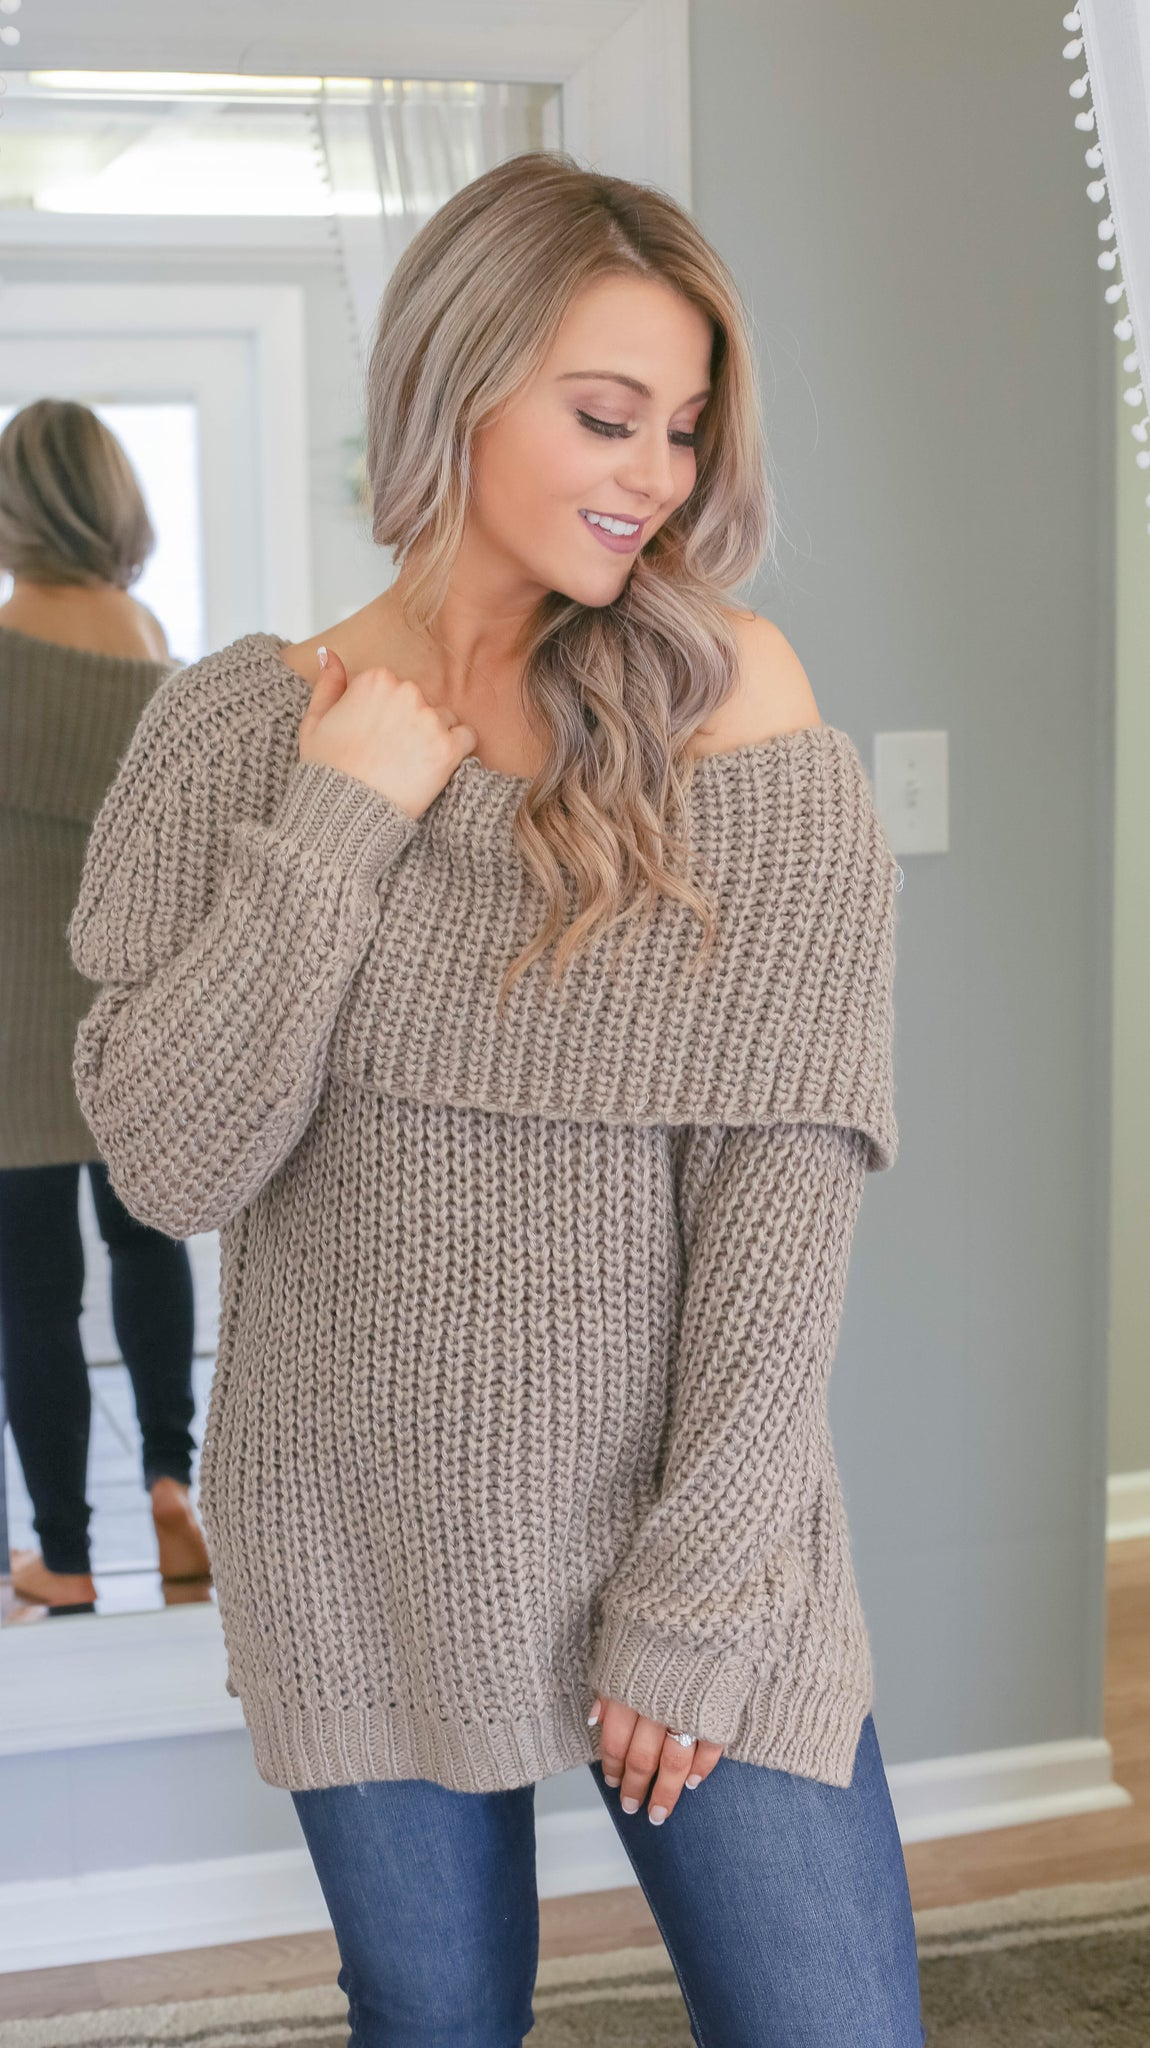 Chilly Night Out Sweater - Bates Boutique